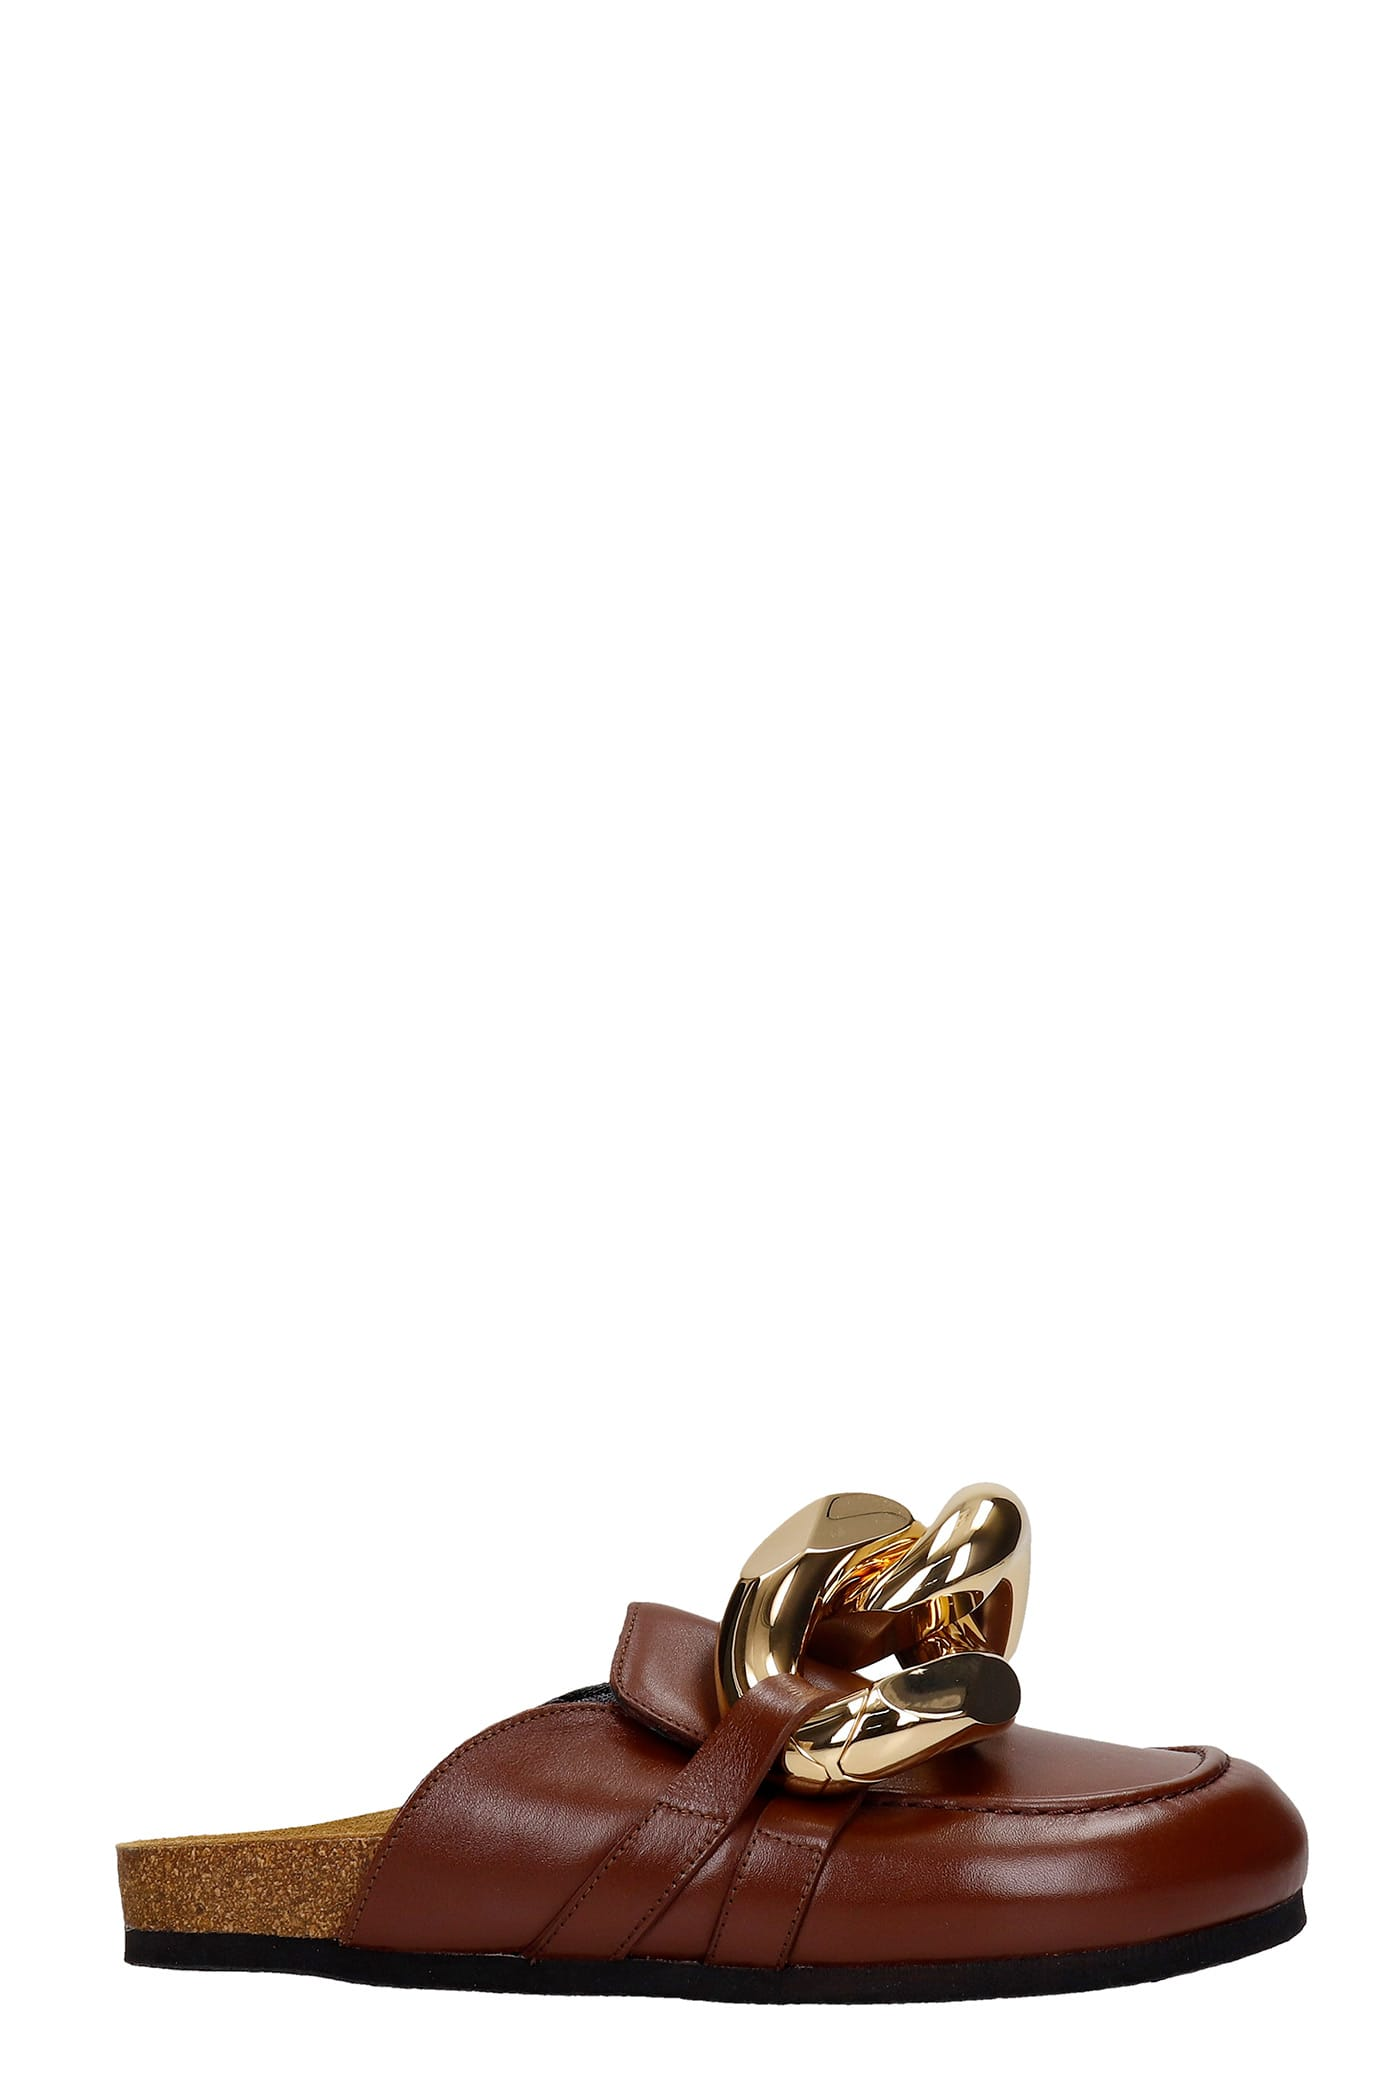 Jw Anderson Suedes FLATS IN BROWN LEATHER